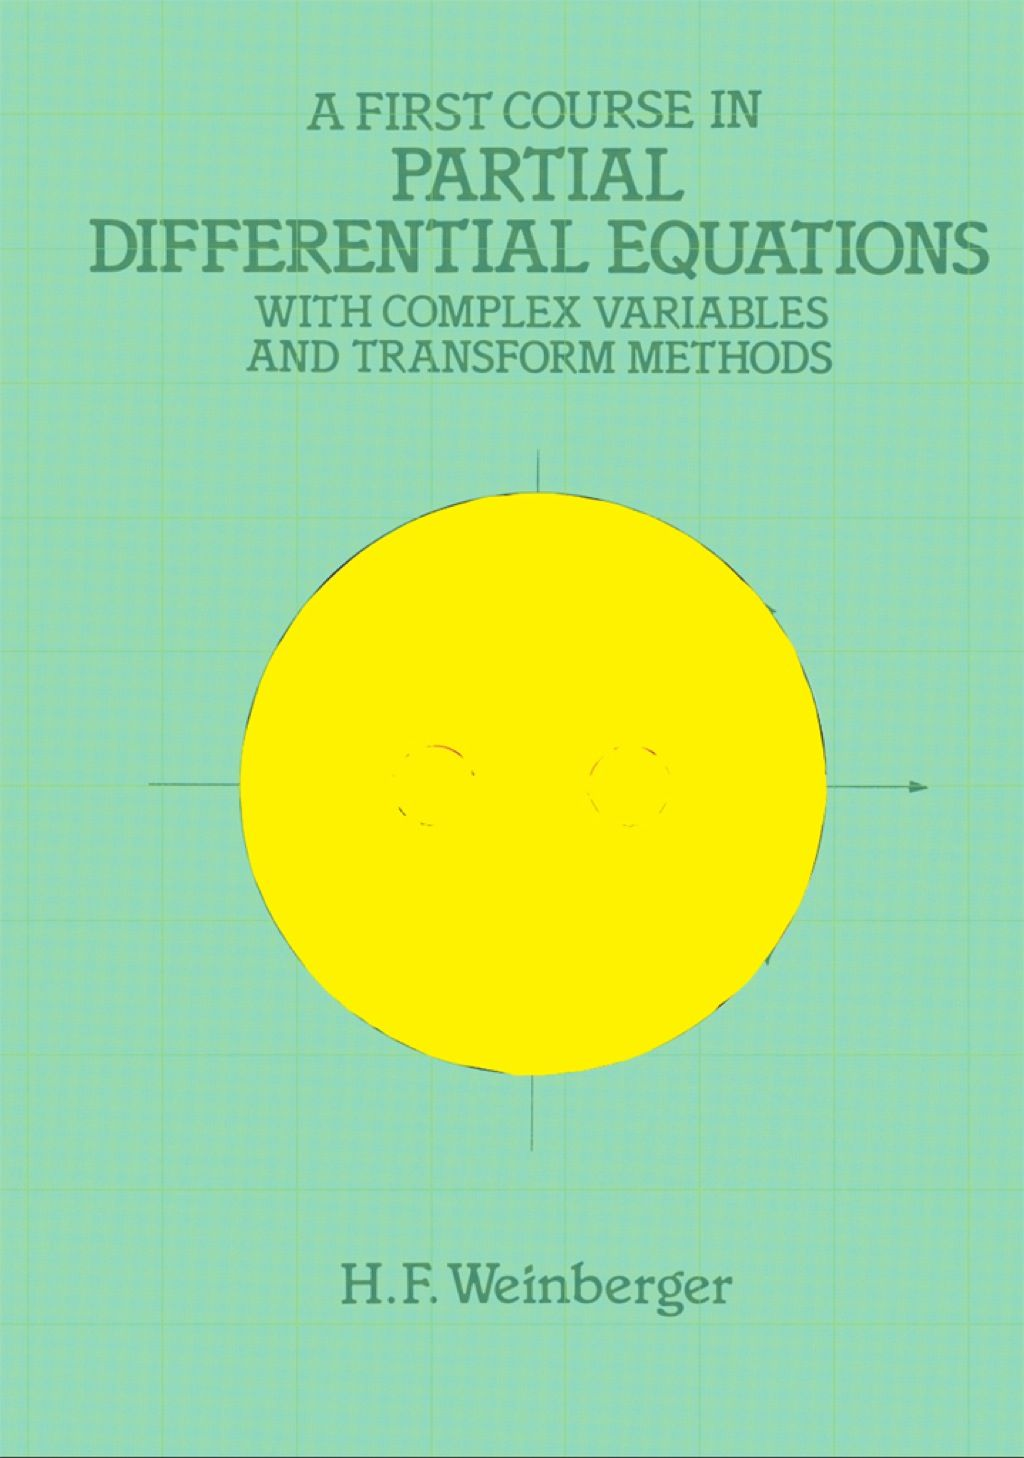 A First Course In Partial Differential Equations Ebook In 2019